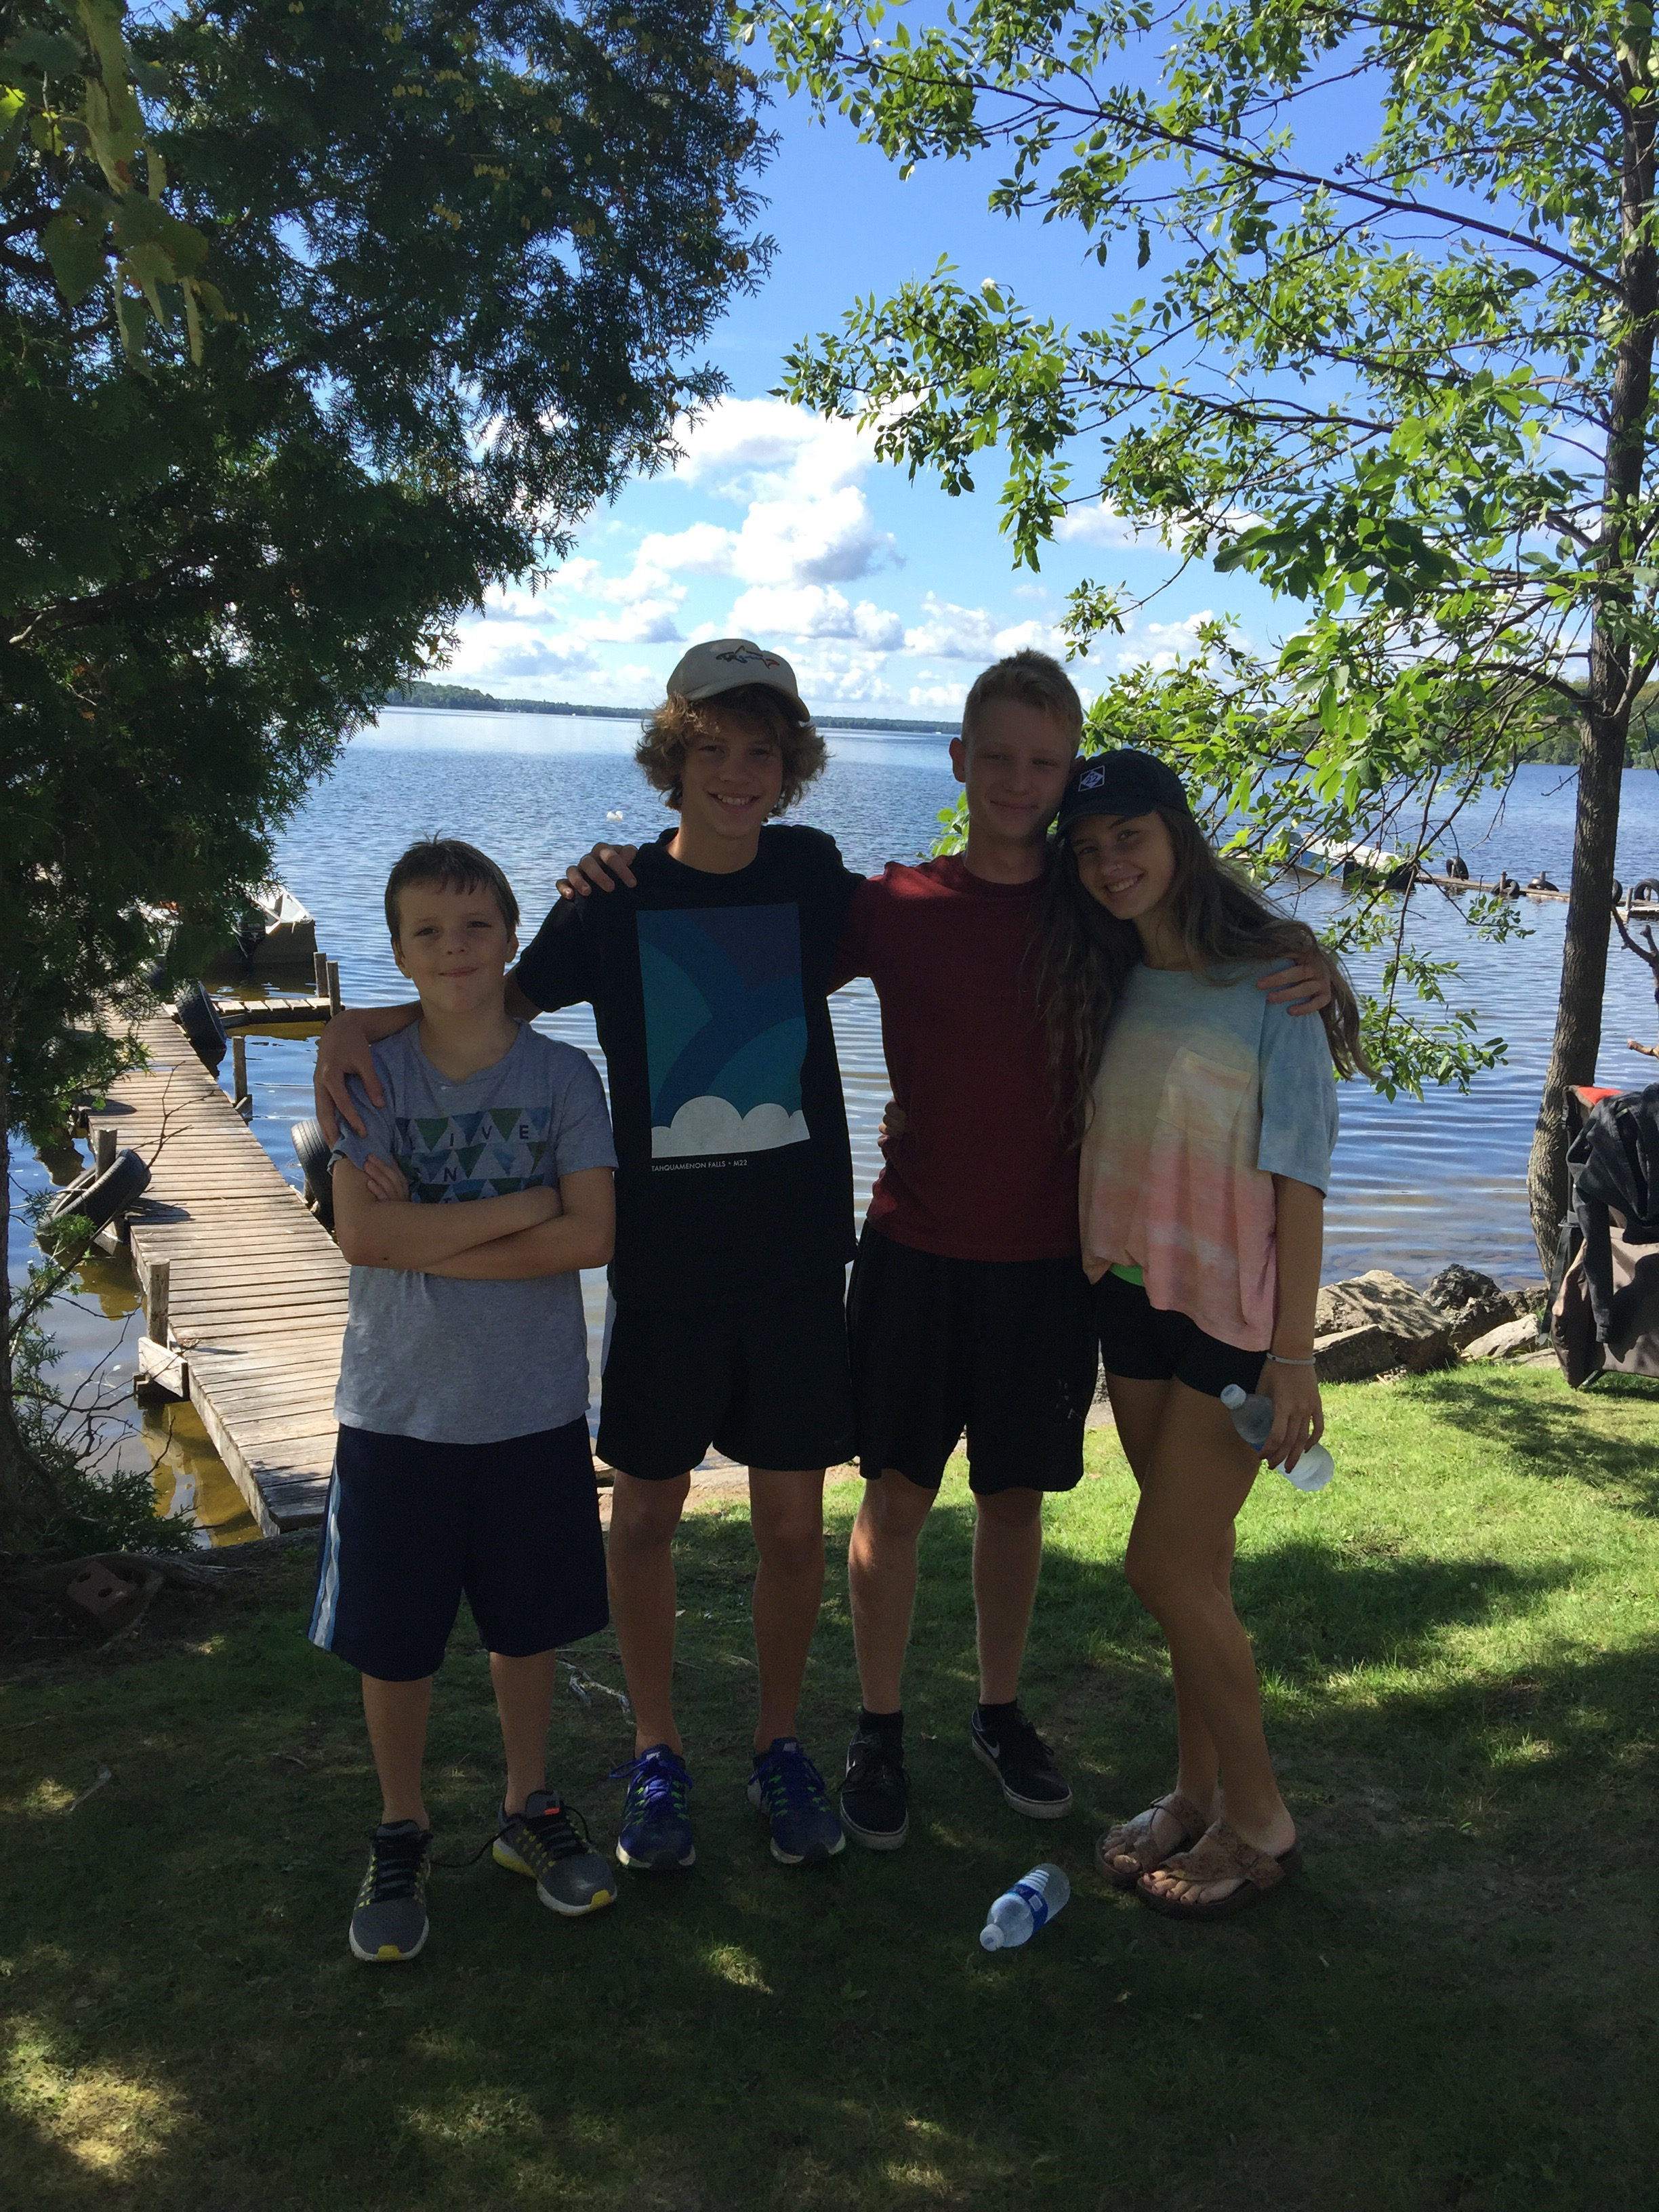 (From left) Alex, Andrew, Isaac (Emma's boyfriend), and Emma. I love this photo of these guys in front of our cabin!